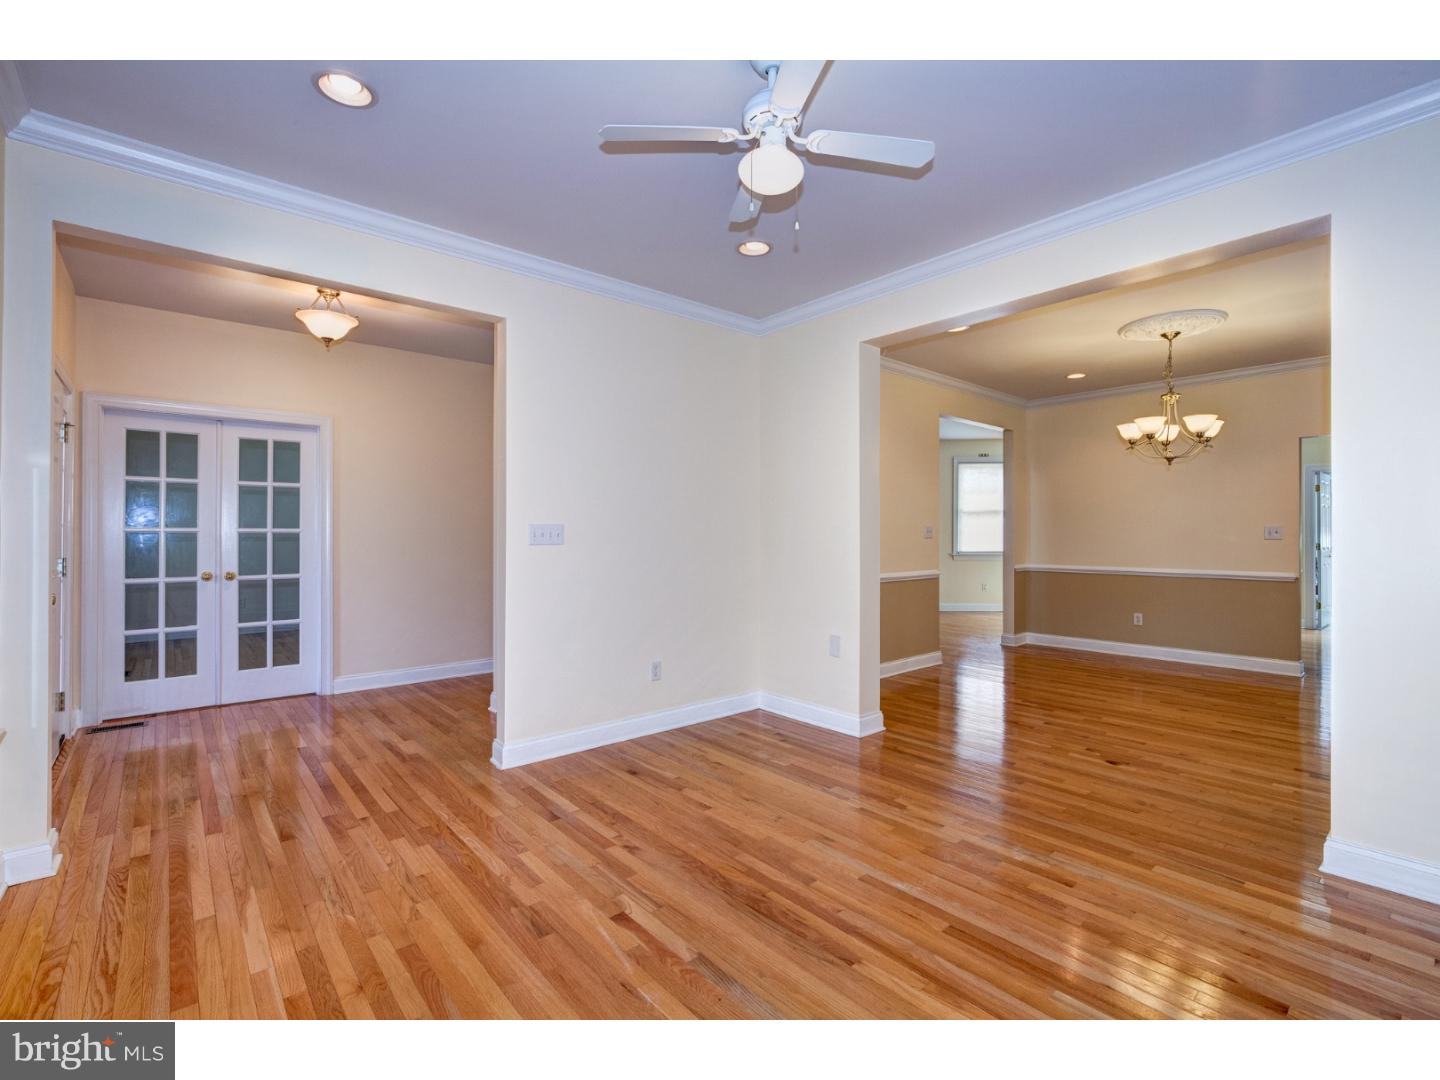 Additional photo for property listing at 15 MACNAMEE Street  Plainsboro, New Jersey 08536 United States